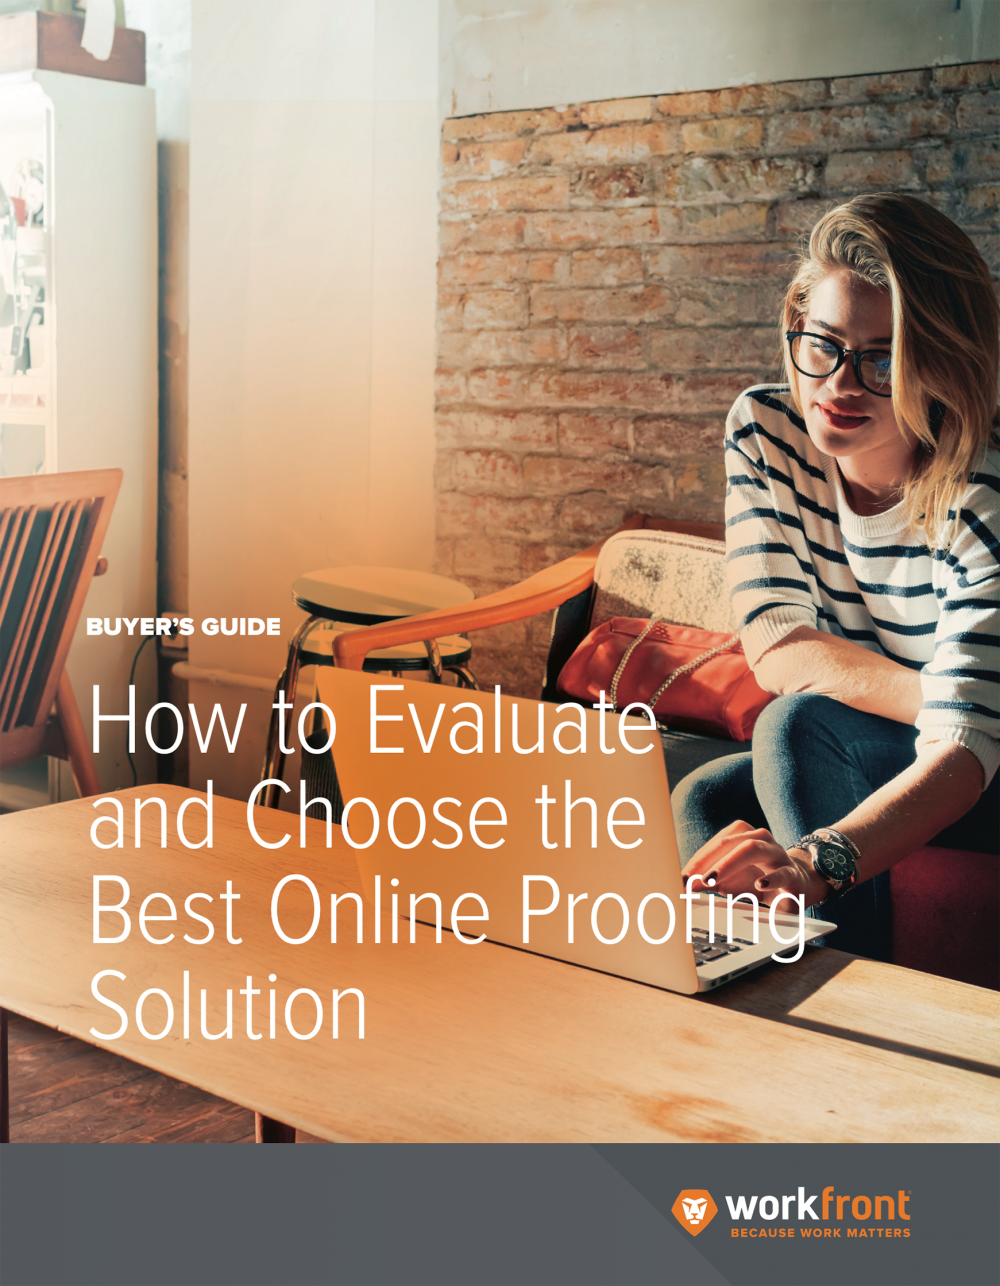 How to Evaluate and Choose the Best Online Proofing Solution